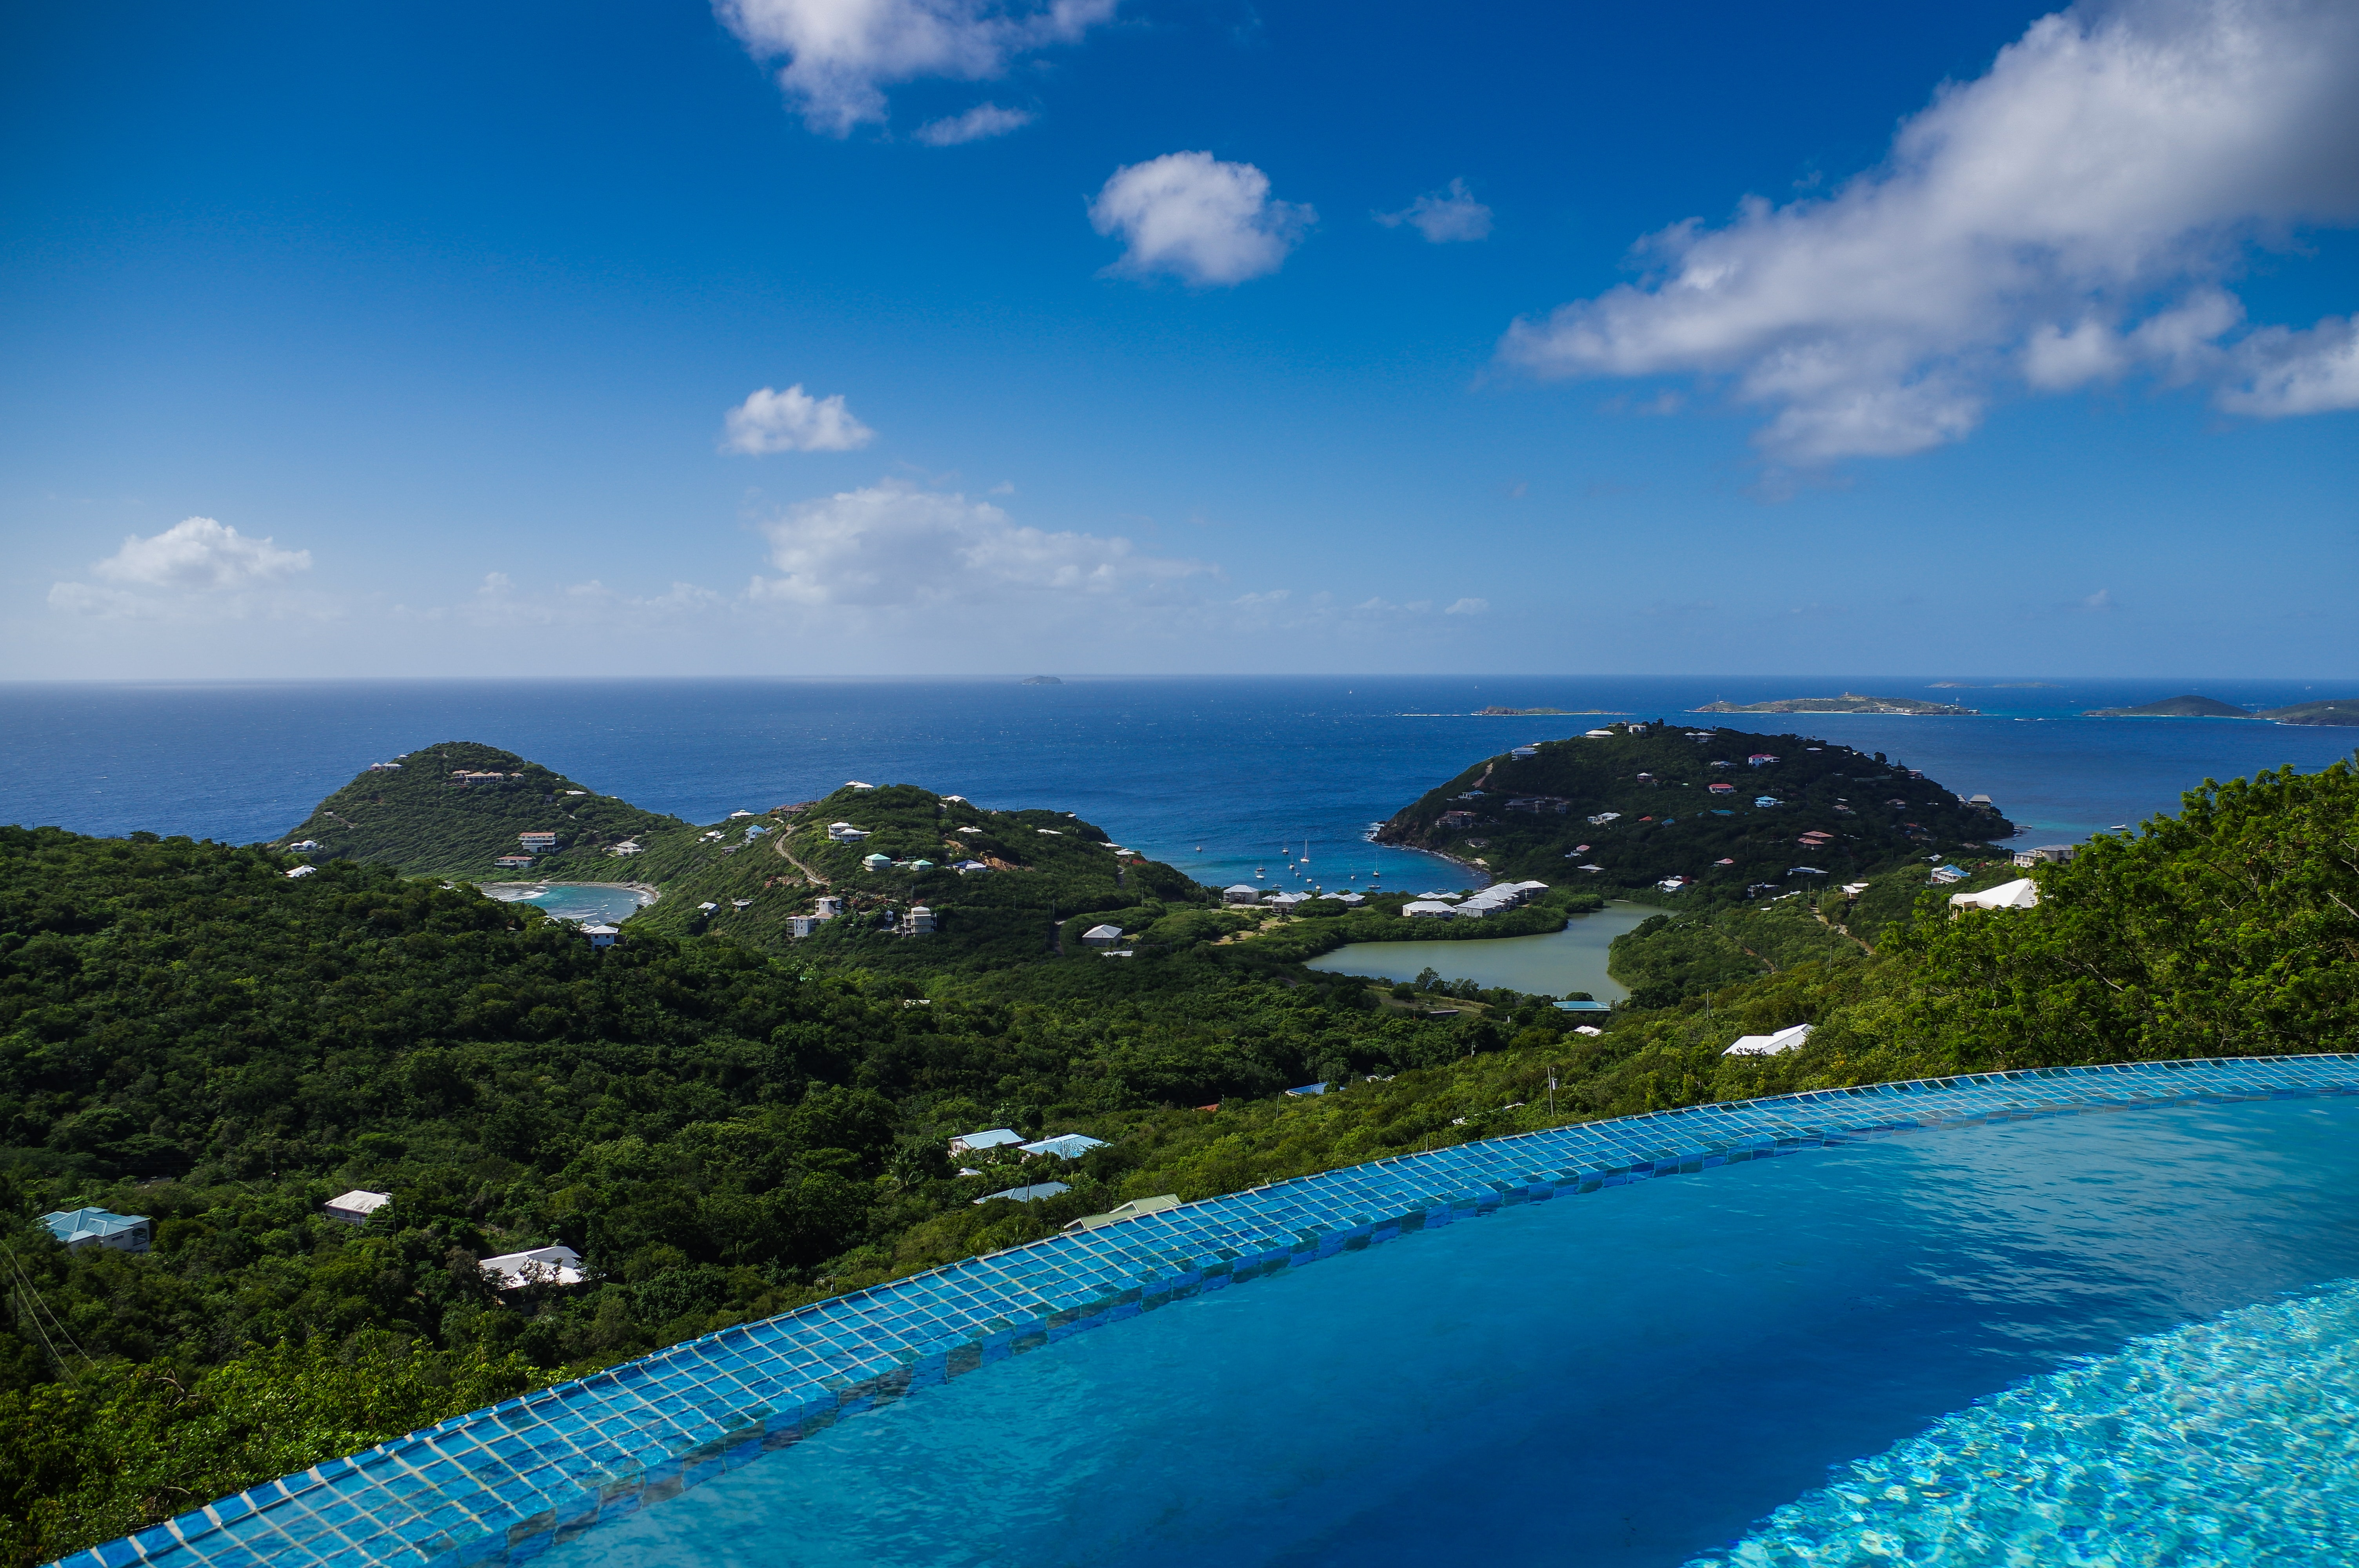 A round infinity pool on a green coast on a bright day